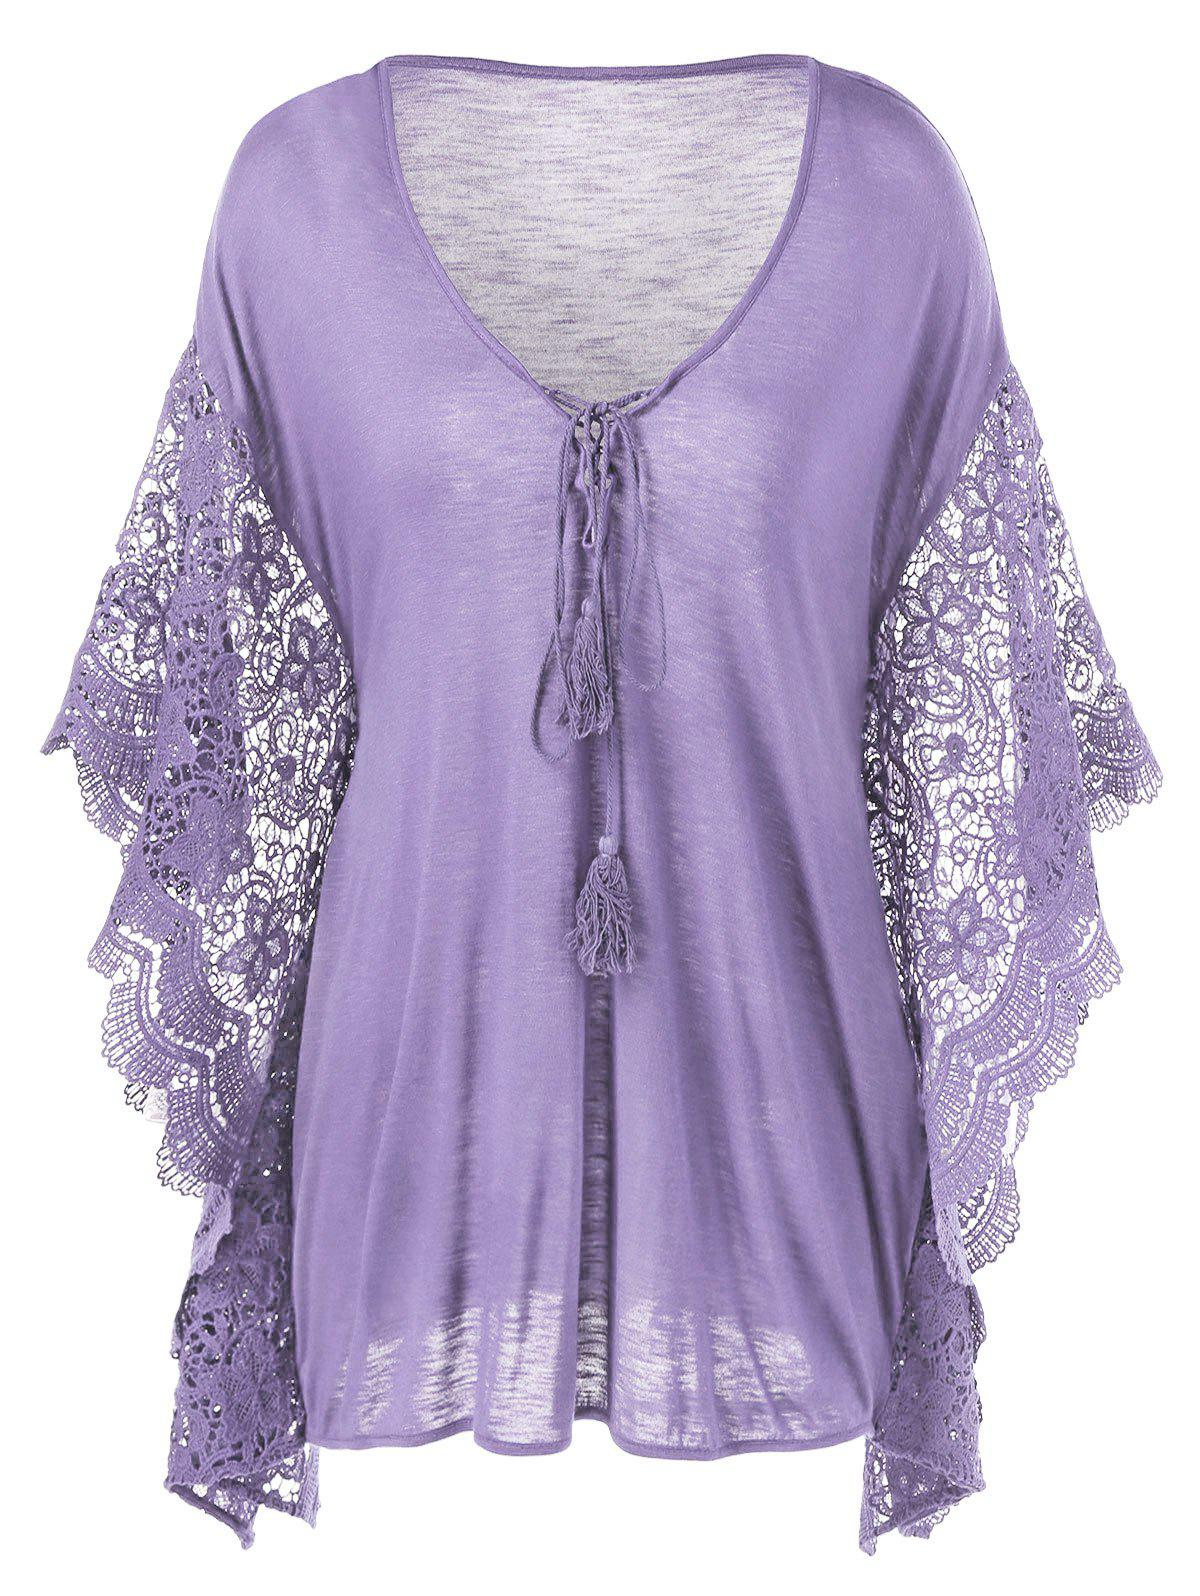 7390c09bc7ee 31% OFF] Plus Size Butterfly Sleeve Crochet Trim Blouse Lace Tops ...